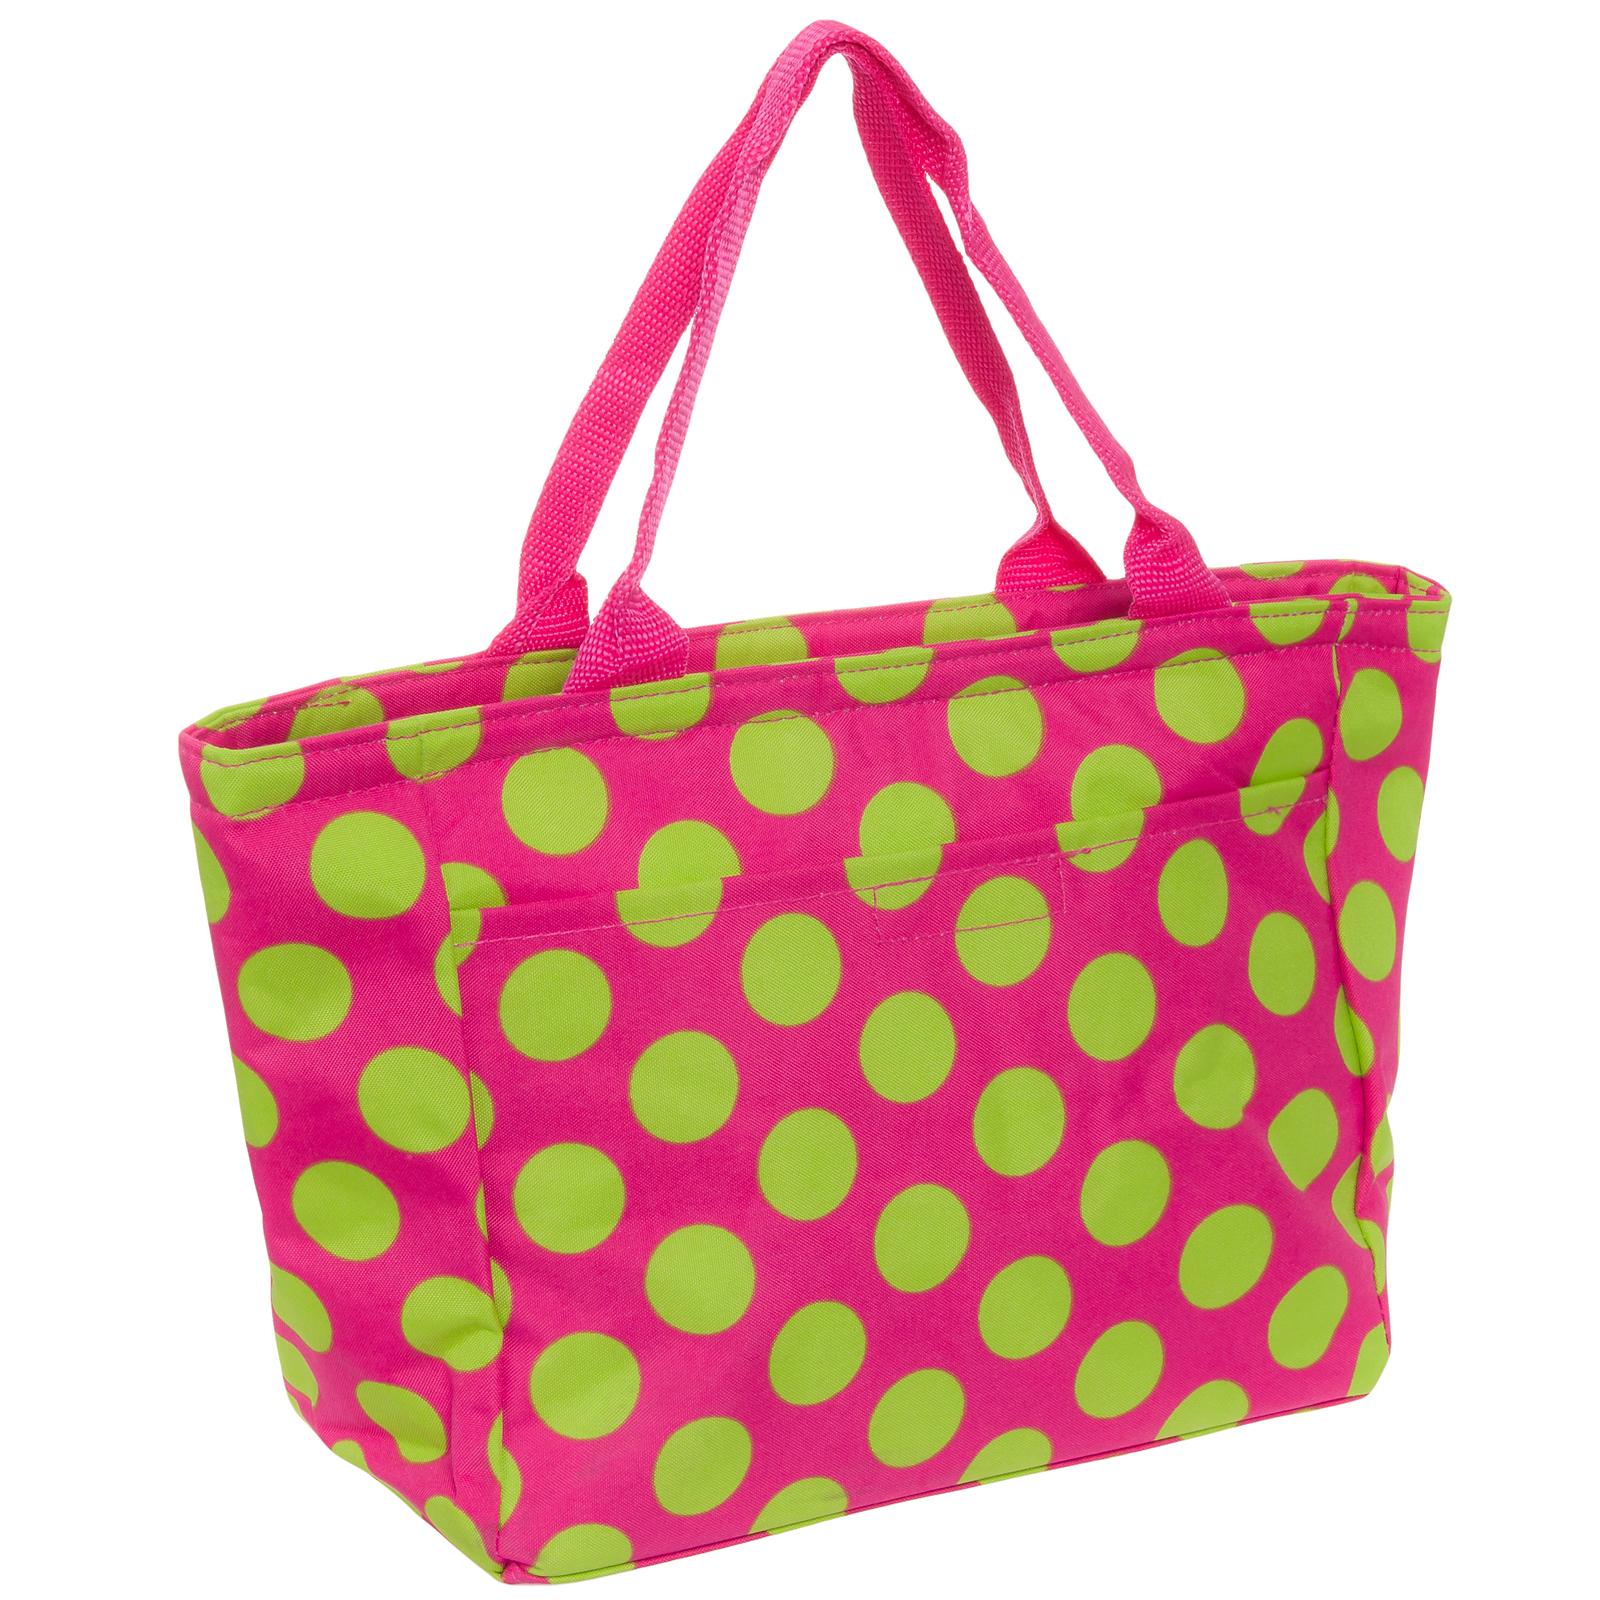 Model 2015 New Fashion Lancheira Lunch Bags Cooler Insulated Lunch Bag For Kids Women Men Insulation ...